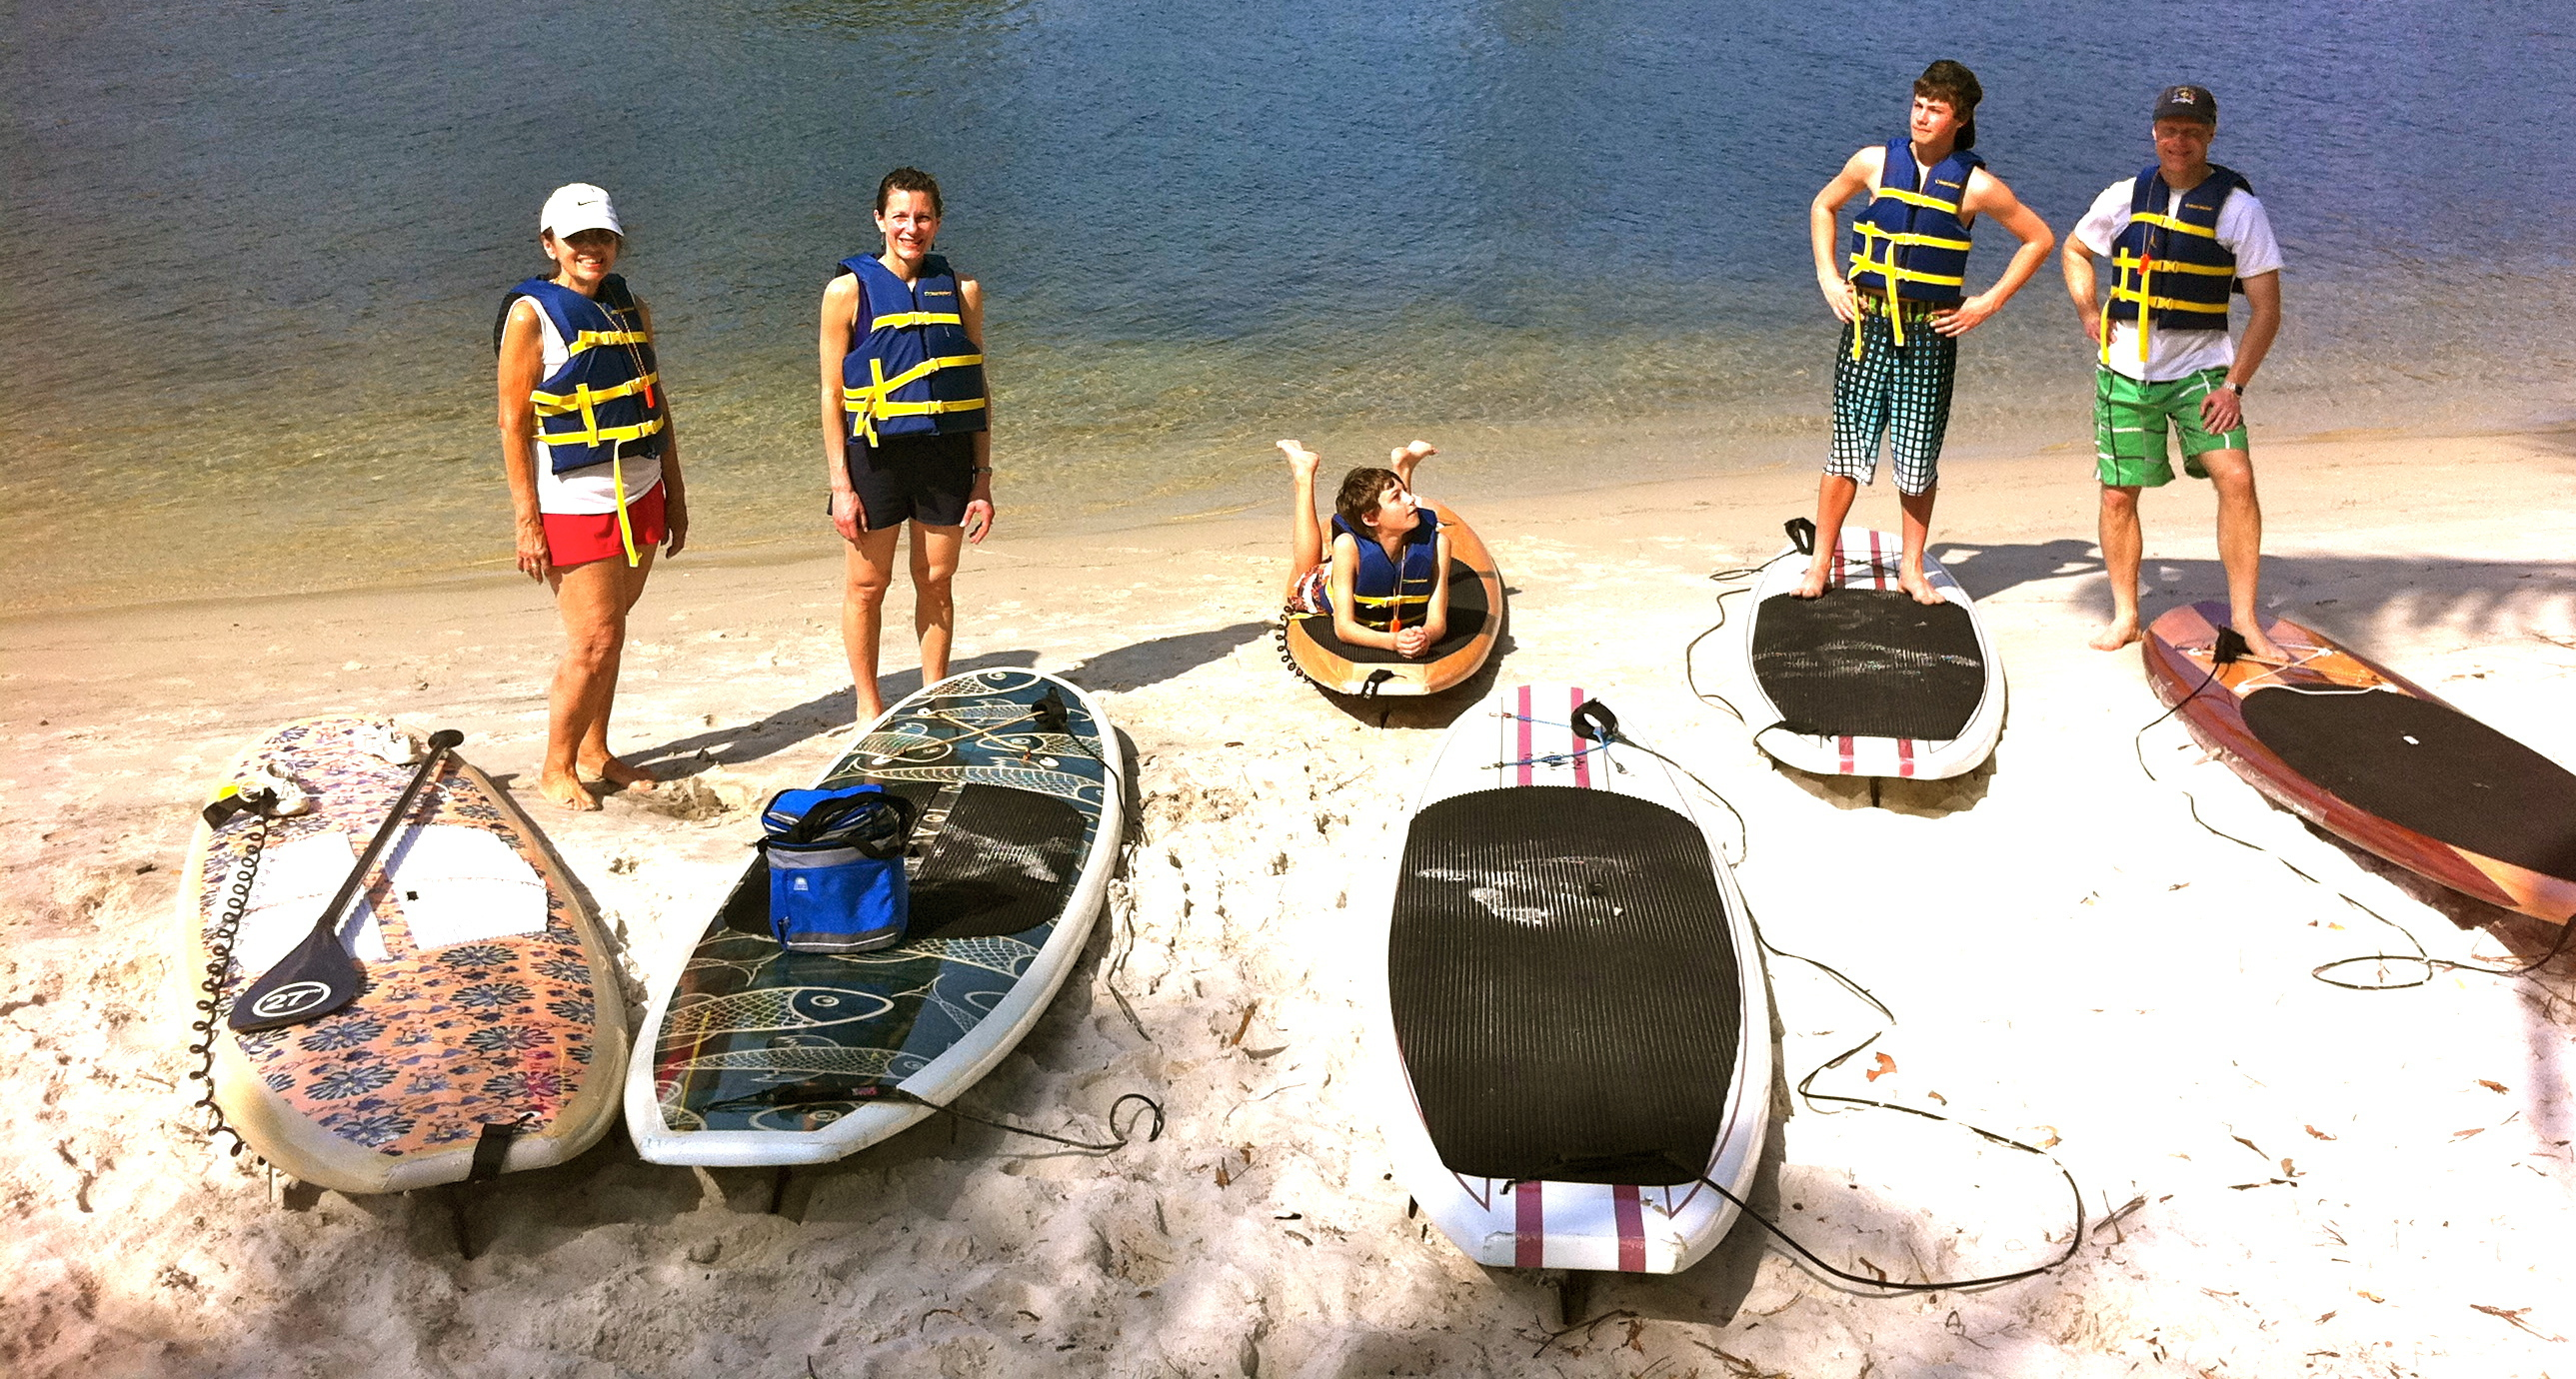 Paddleboard Excursions North Palm Beach Fl Groupon